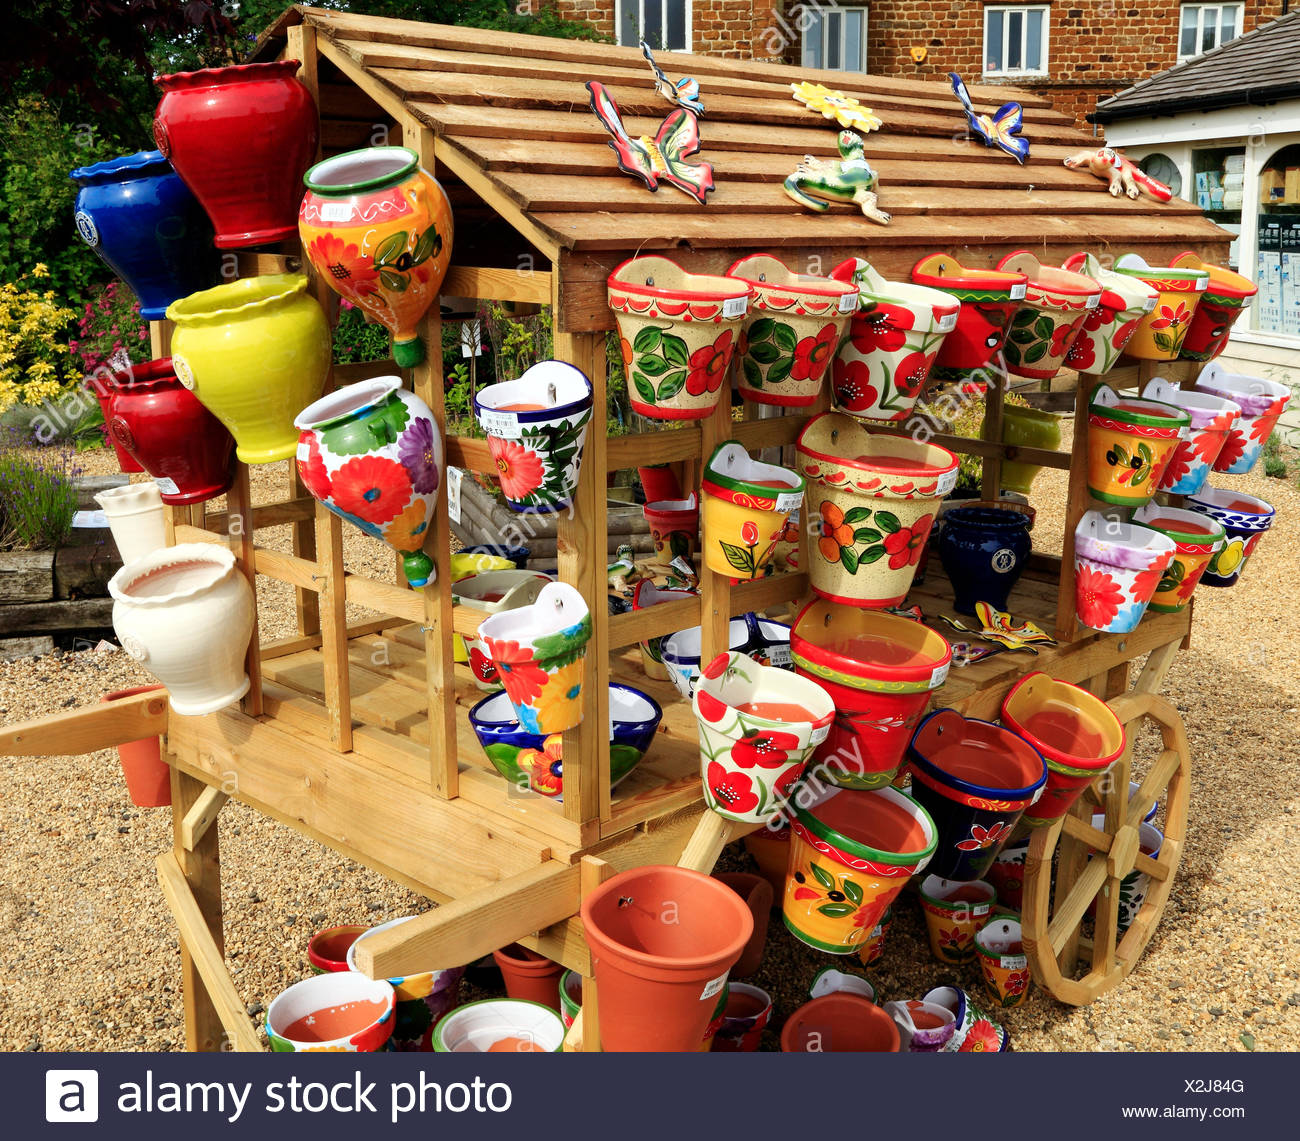 Colourful, colorful, decorative, Pots, Planters, containers, Garden Nursery sales England UK - Stock Image